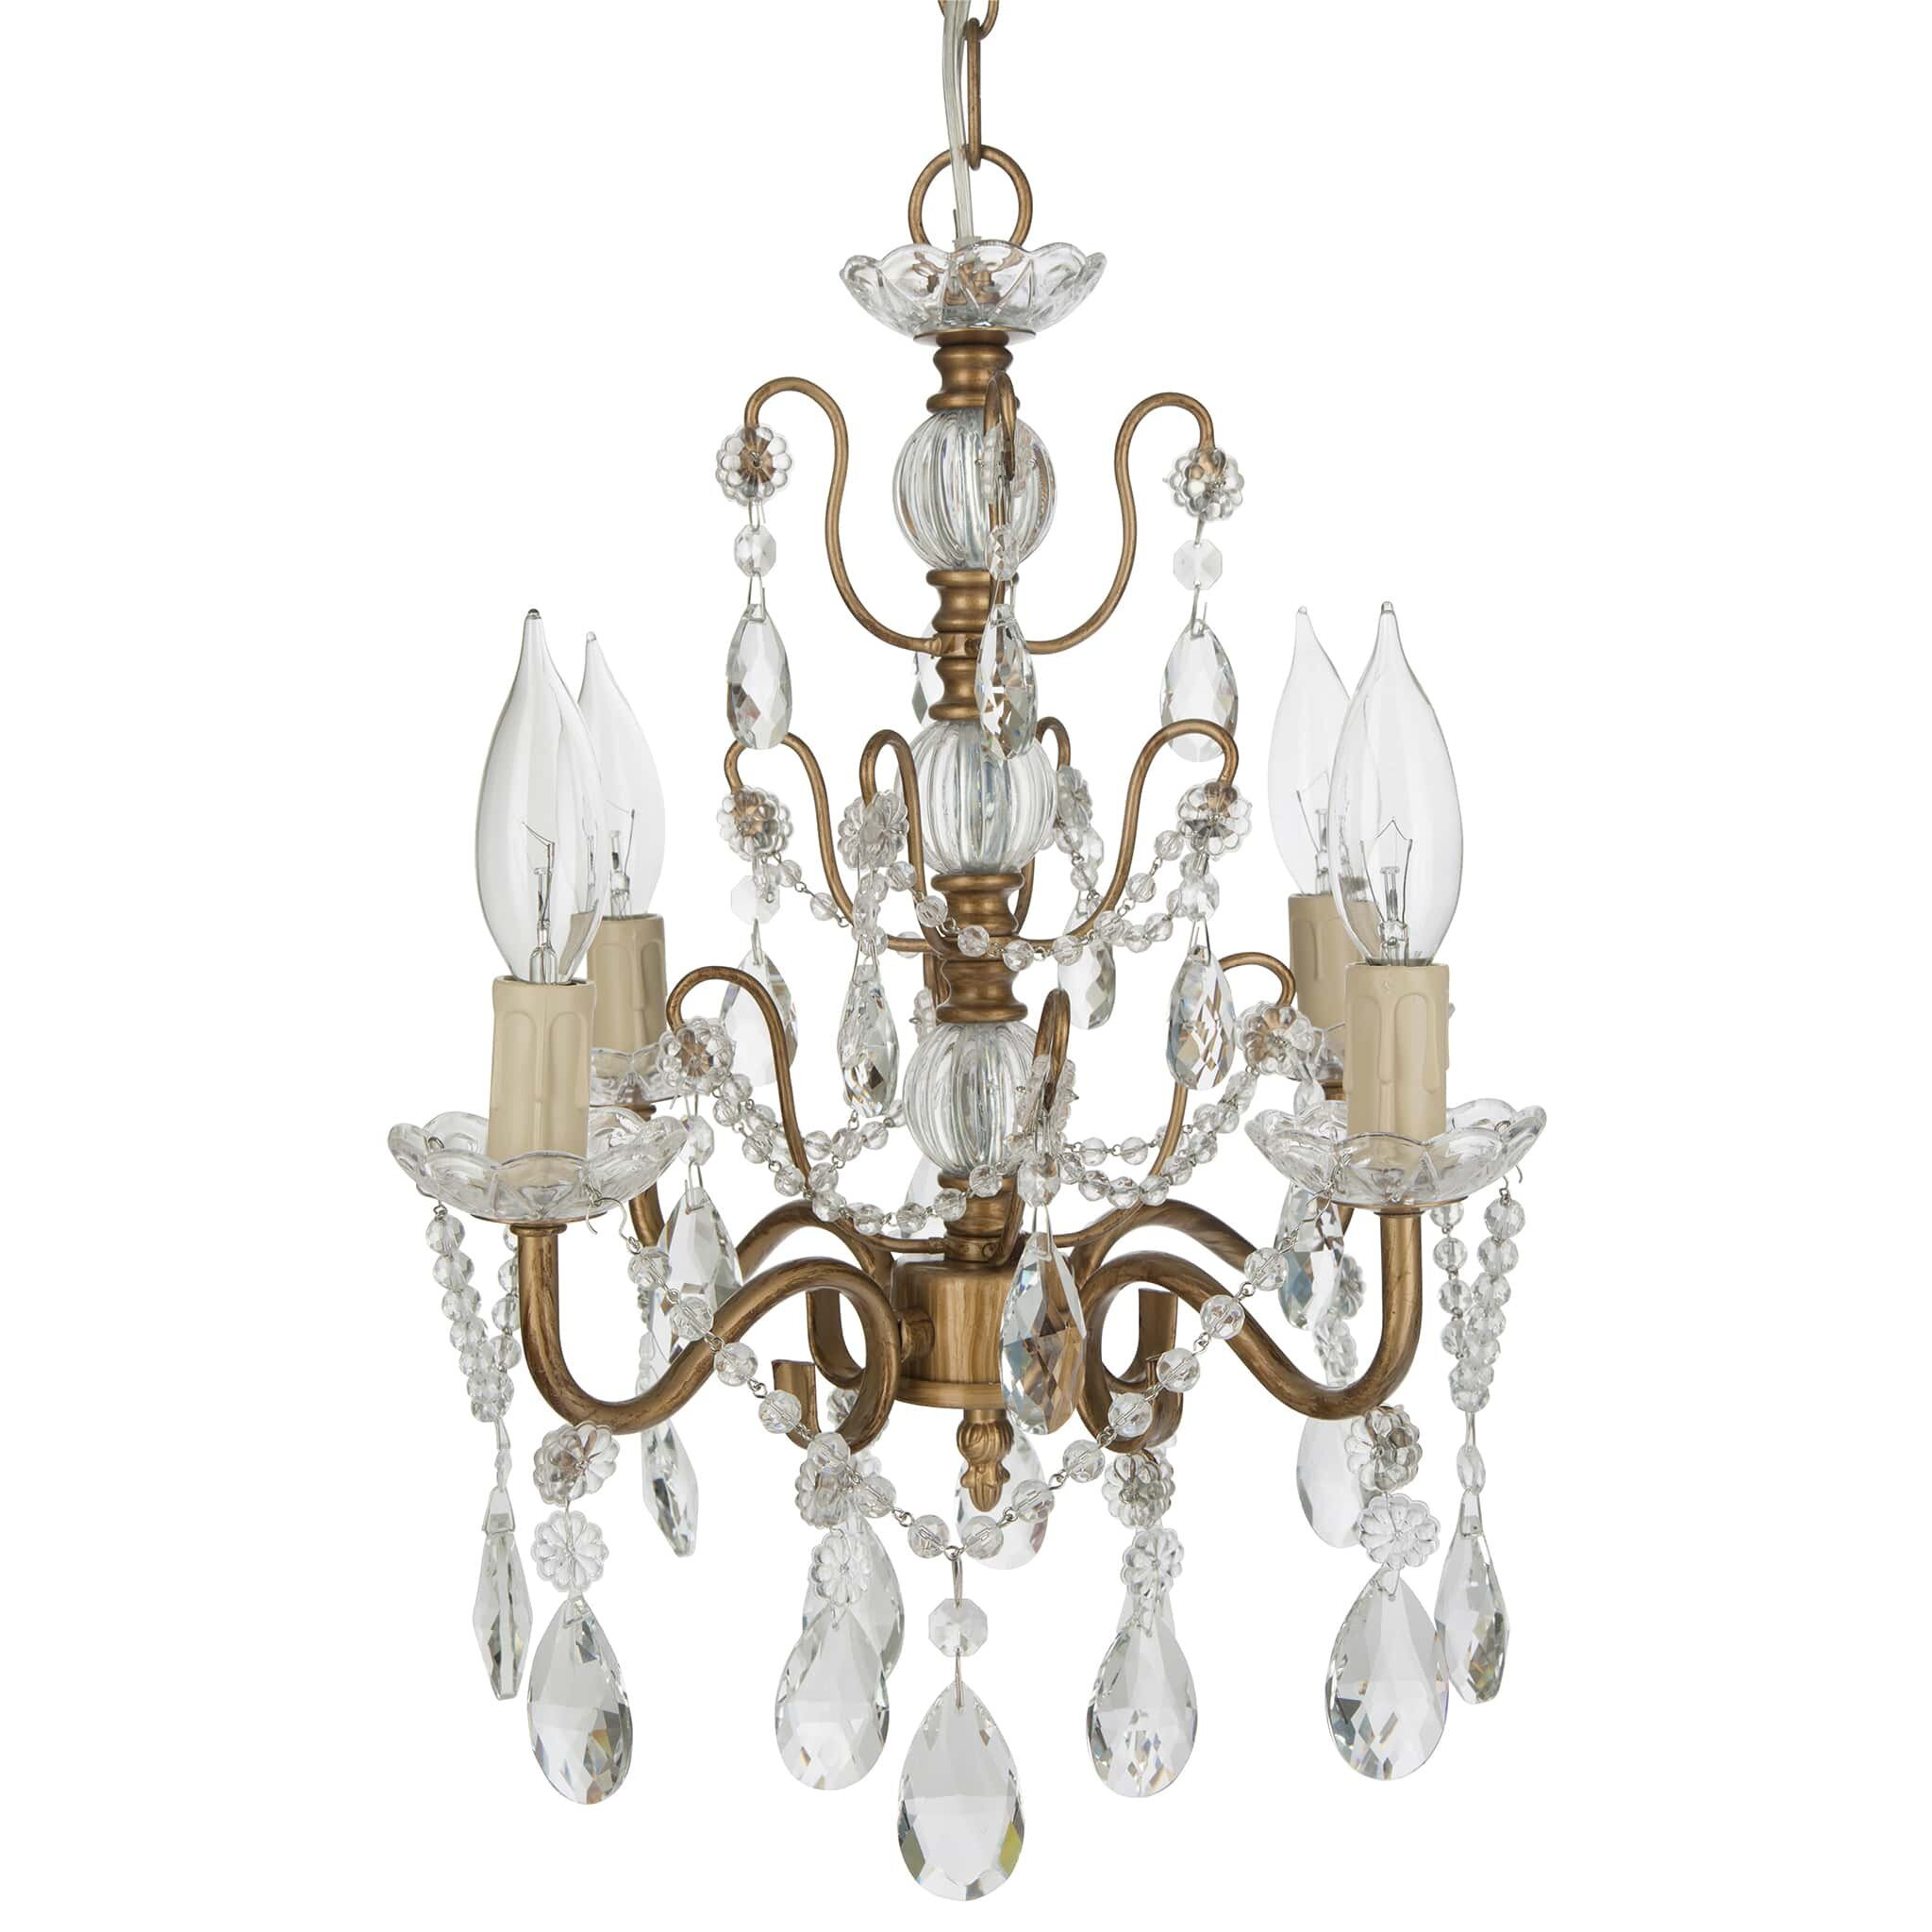 Mini or Small Chandeliers Youll Love – Mini Crystal Chandelier Under 100